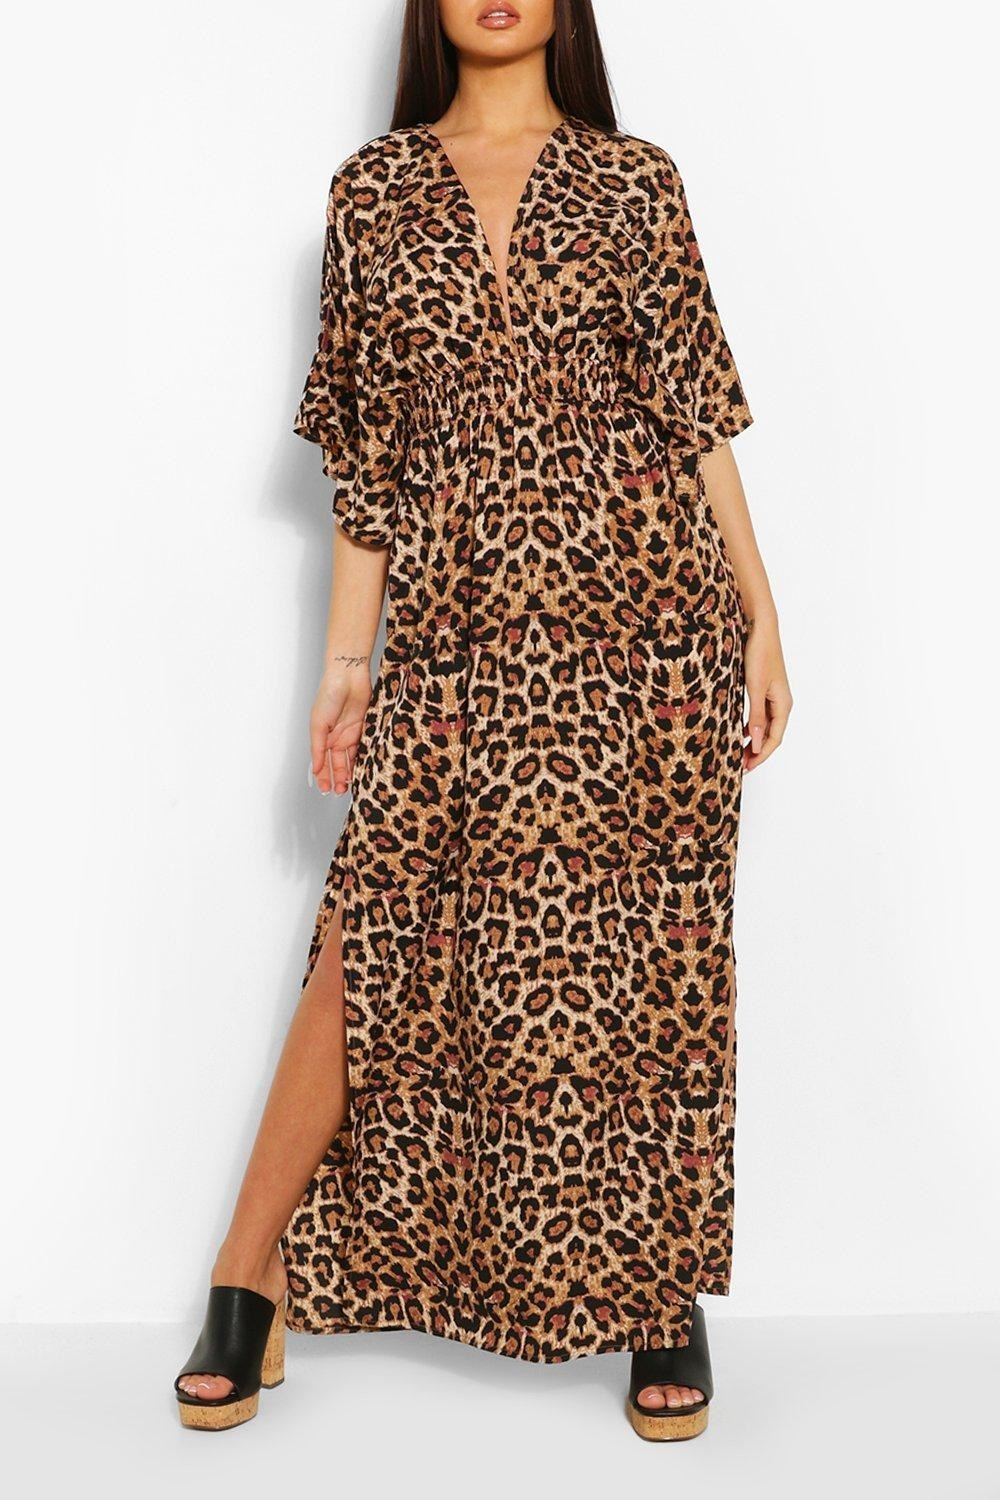 model wearing cheetah print kimono style dress with V-neck, side slits that go to the knee